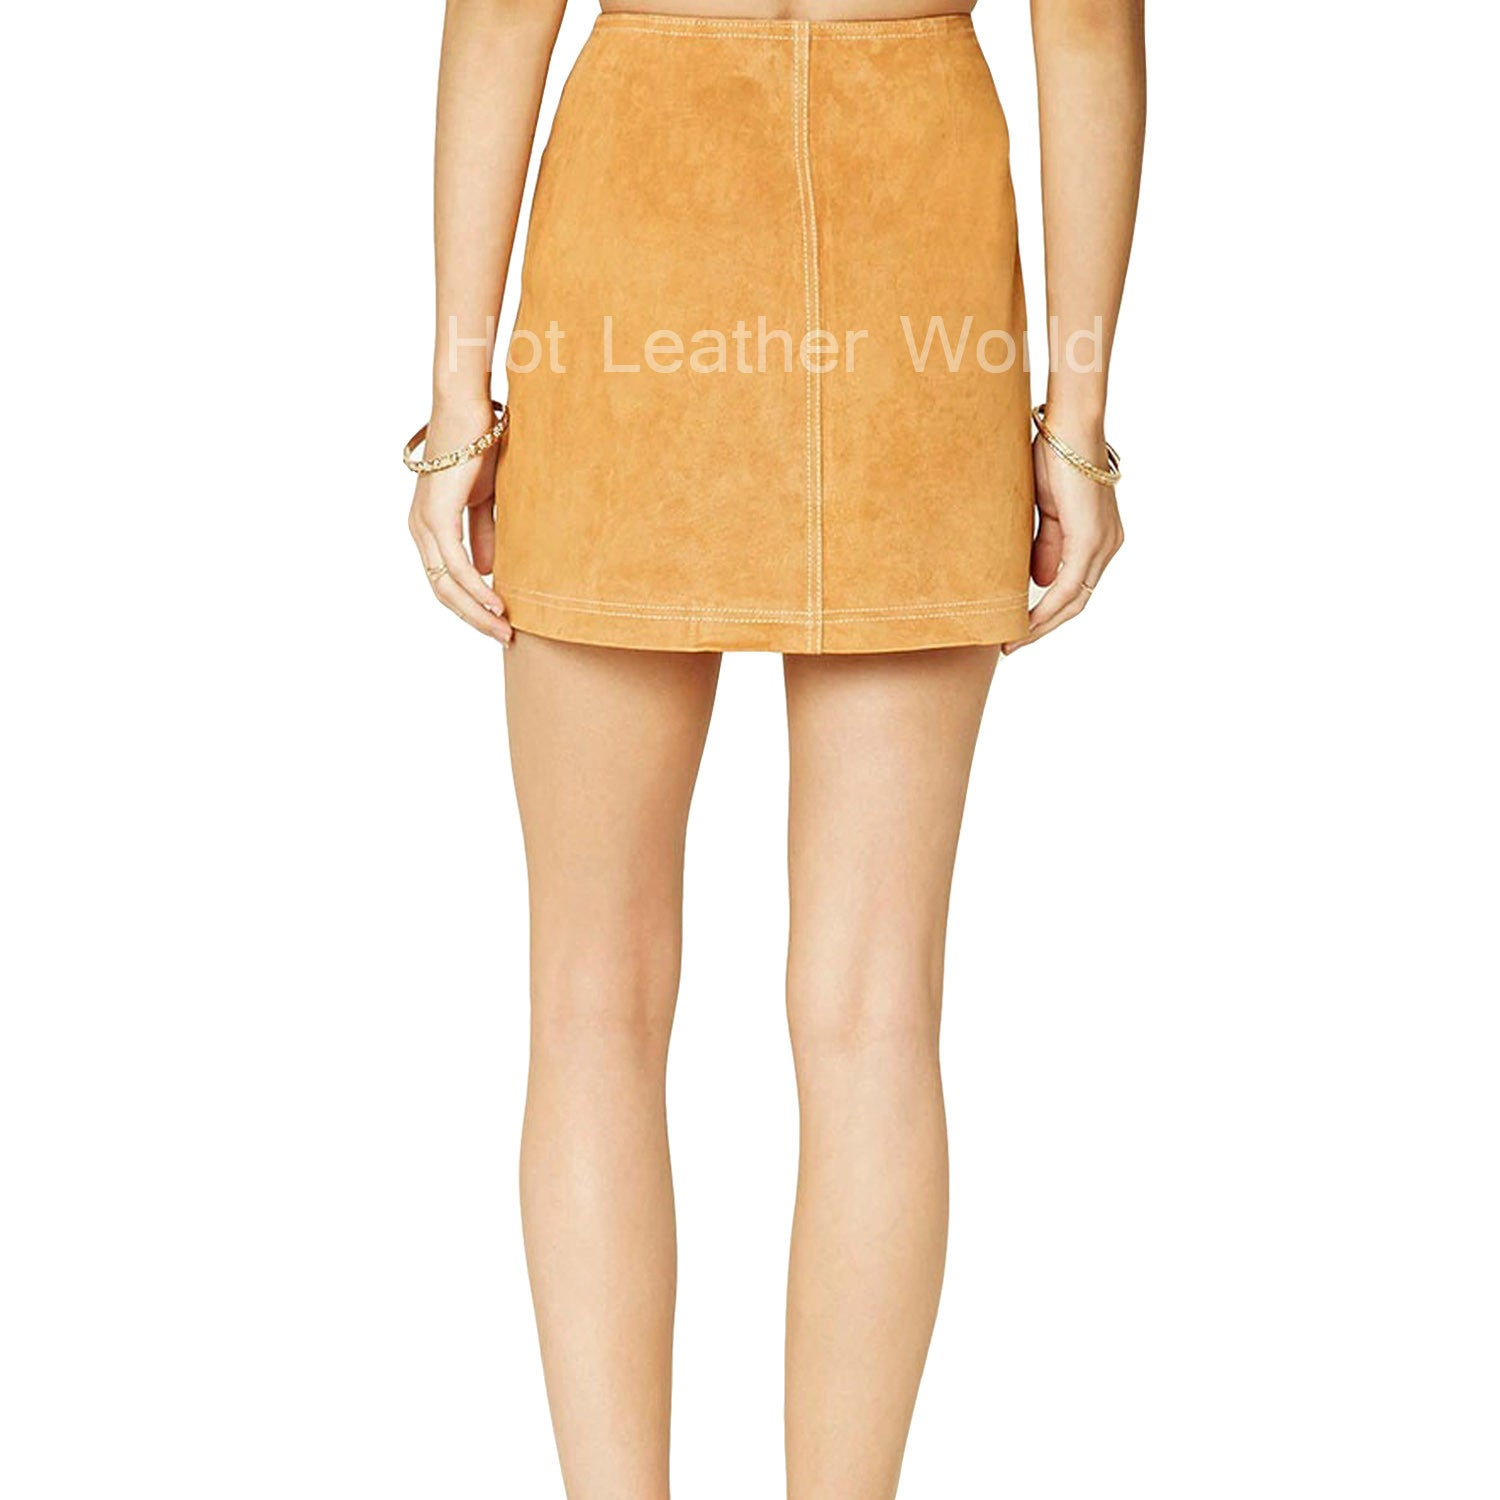 Buttoned Leather Mini Skirt For Women -  HOTLEATHERWORLD